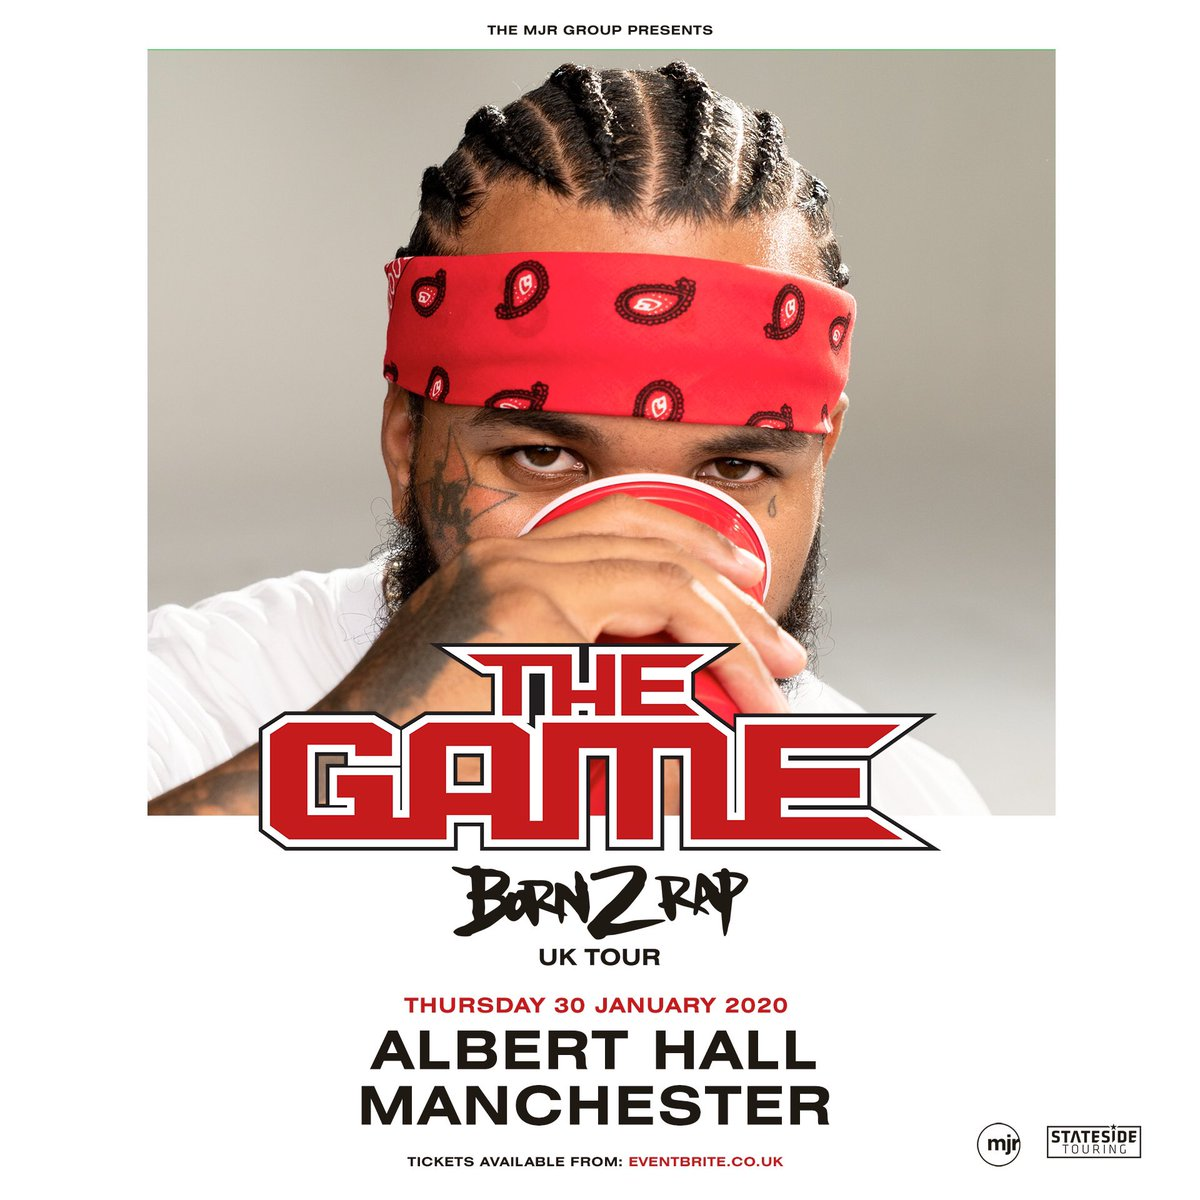 ON SALE NOW @thegame hits Manchester on 30th January! Get tickets here:alberthallmanchester.com/event/the-game/